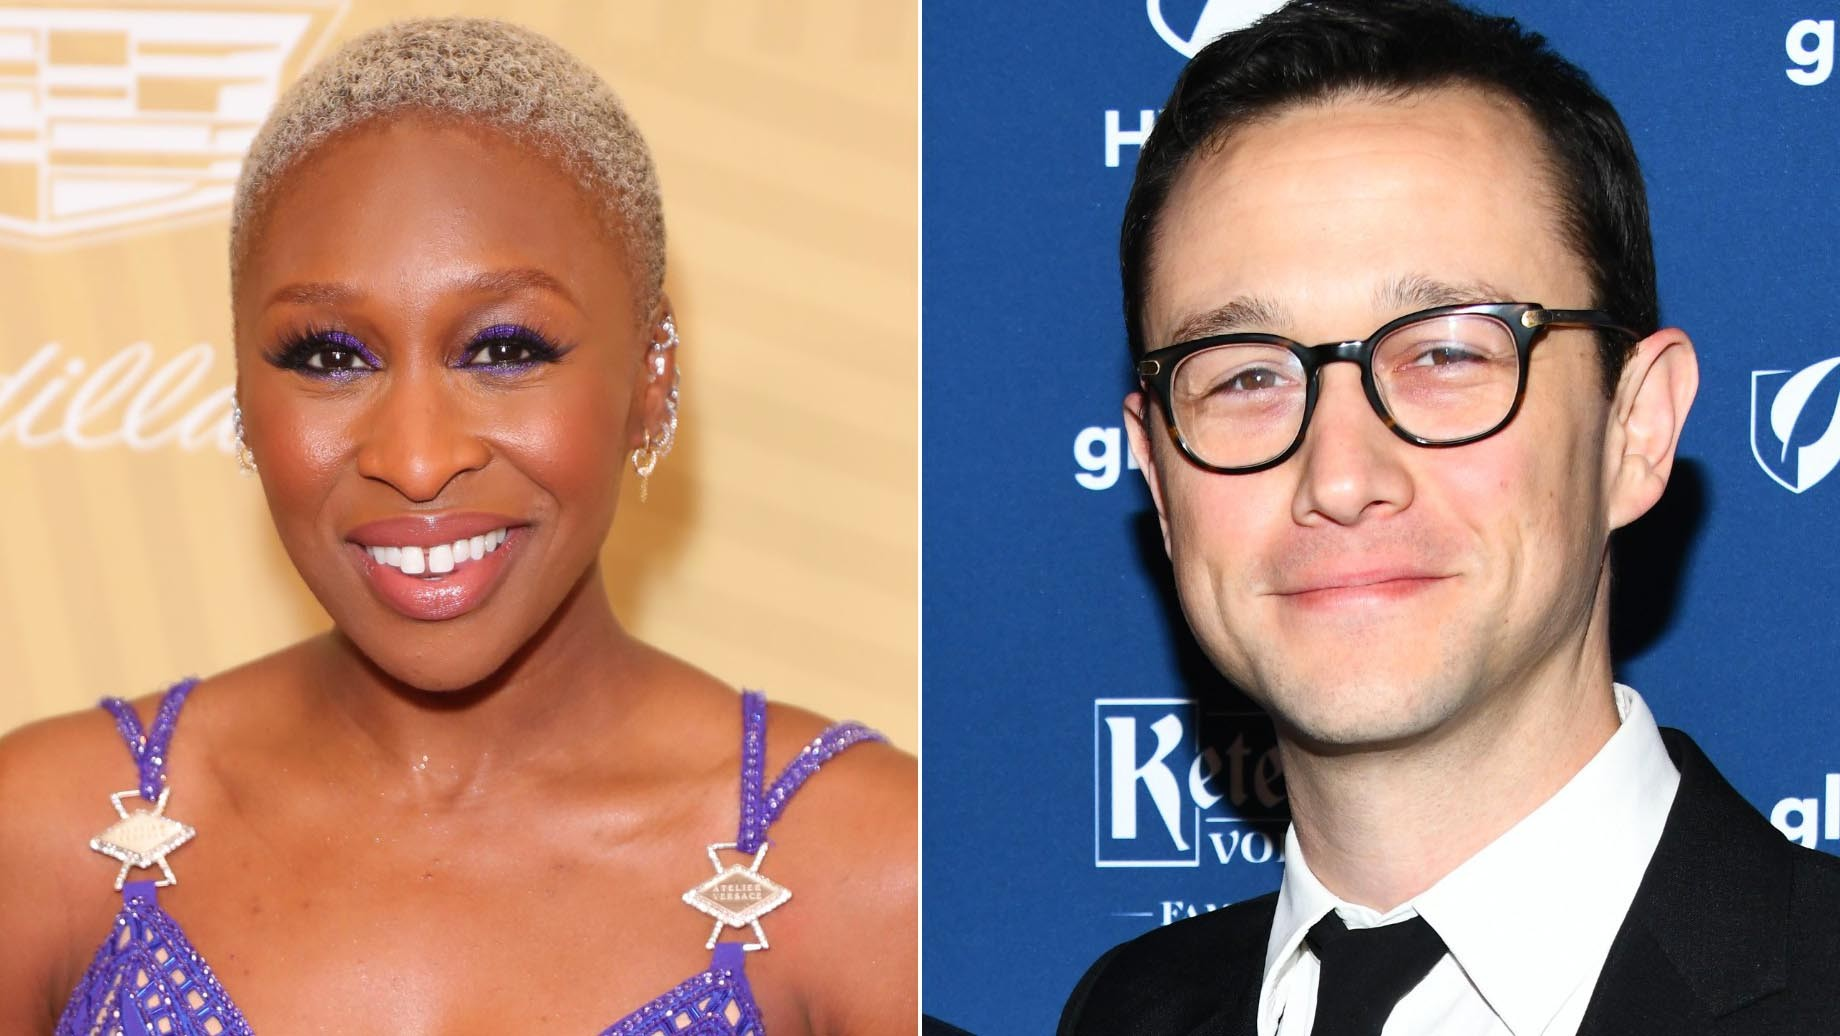 Cynthia Erivo and Joseph Gordon-Levitt Join Live-Action 'Pinocchio' Cast | THR News